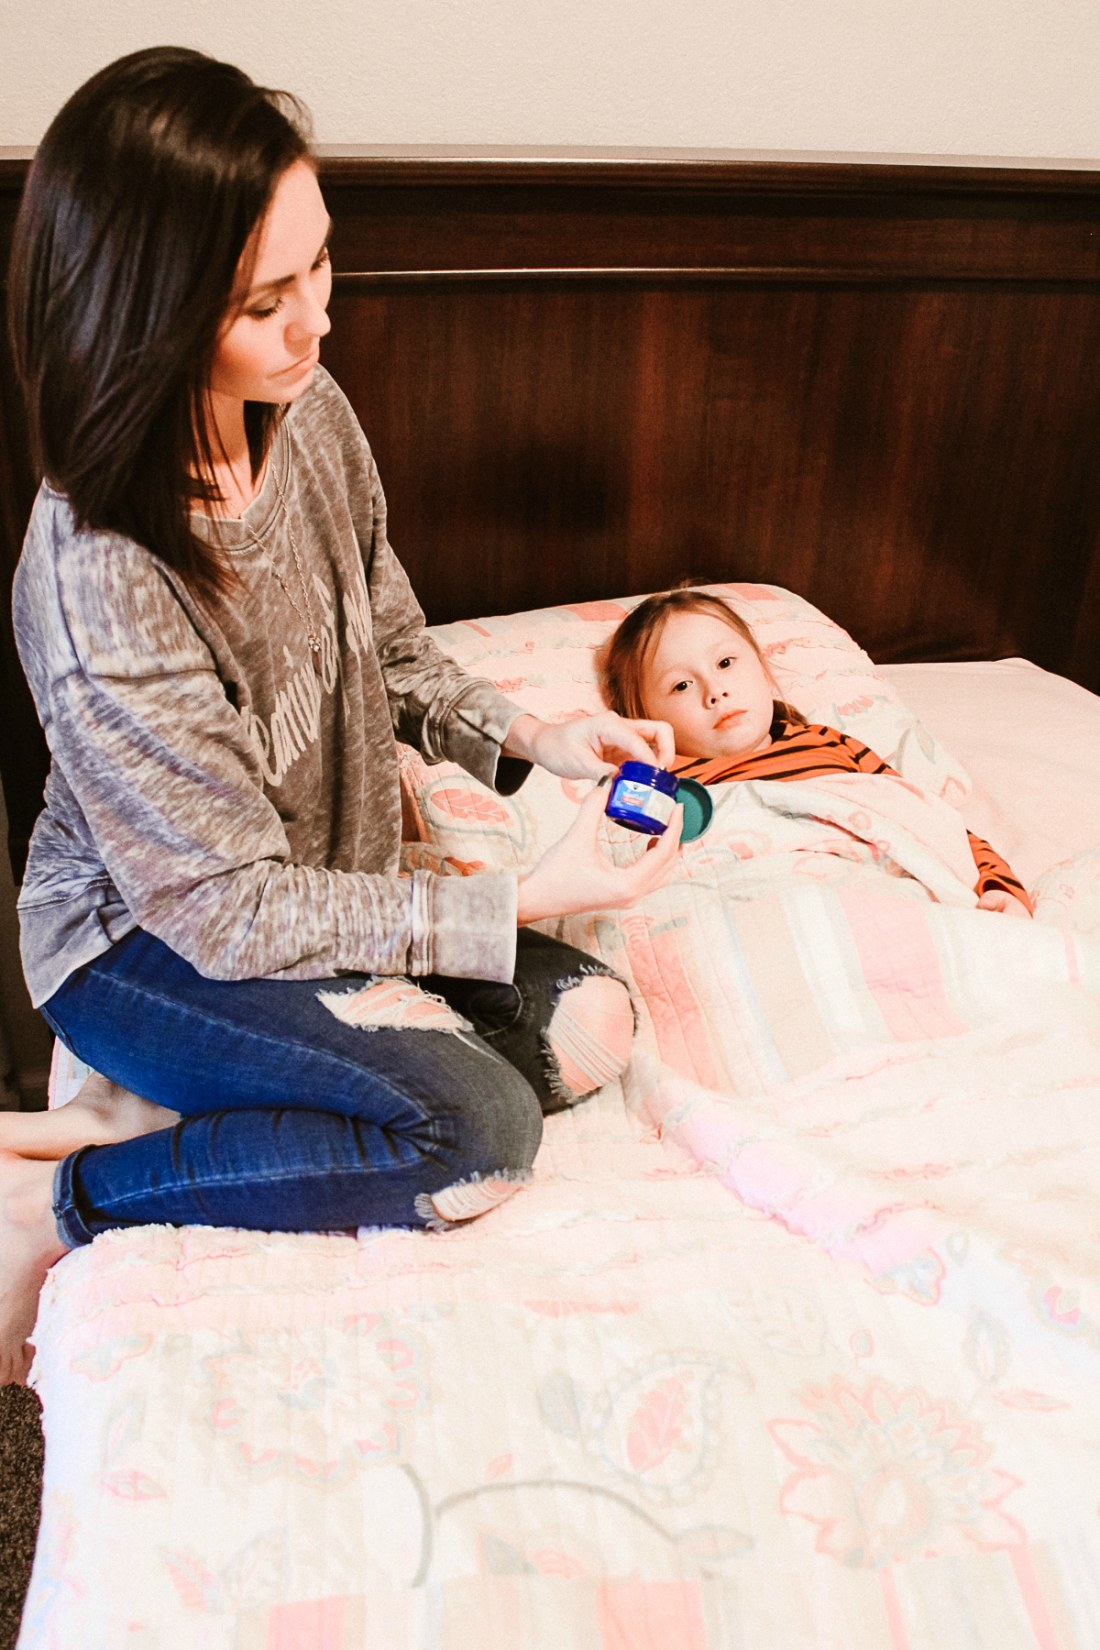 Vicks VapoRub for Nighttime Cough Relief for Kids